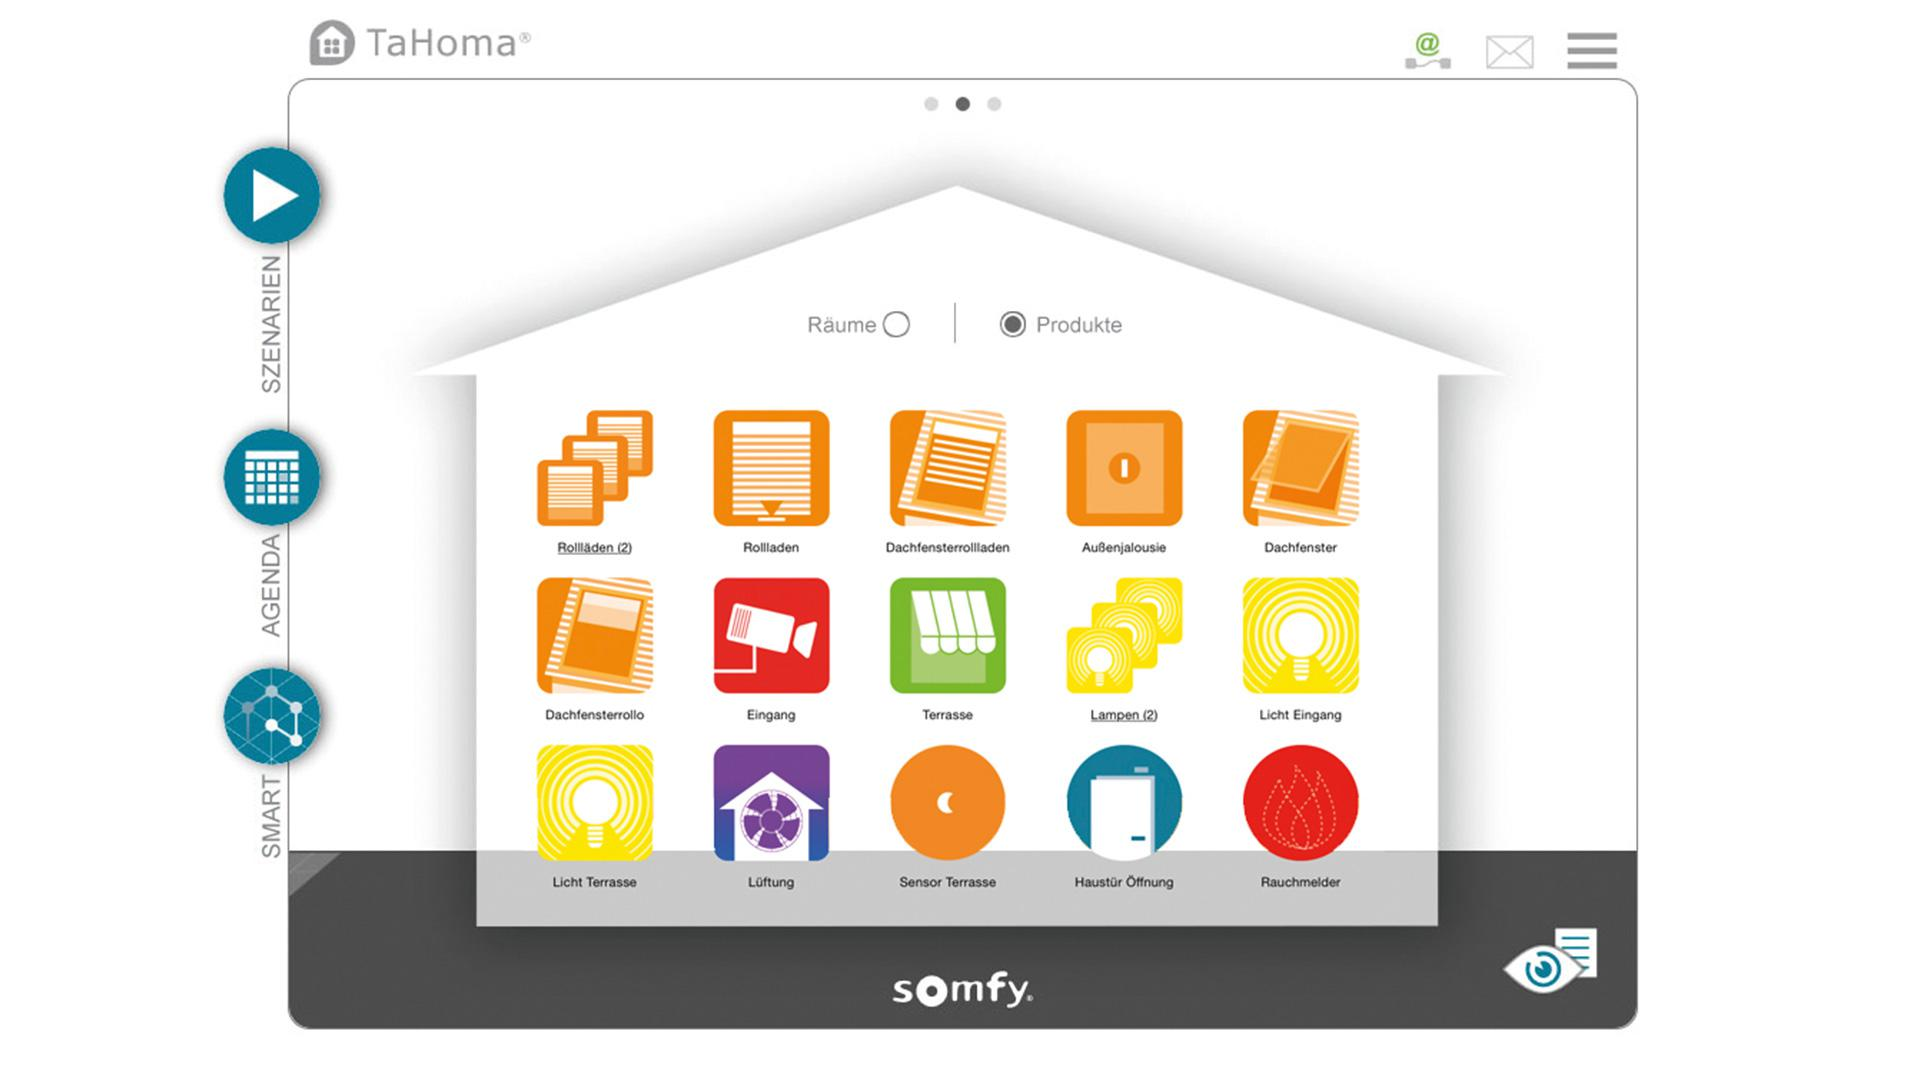 Höfler Smart Home